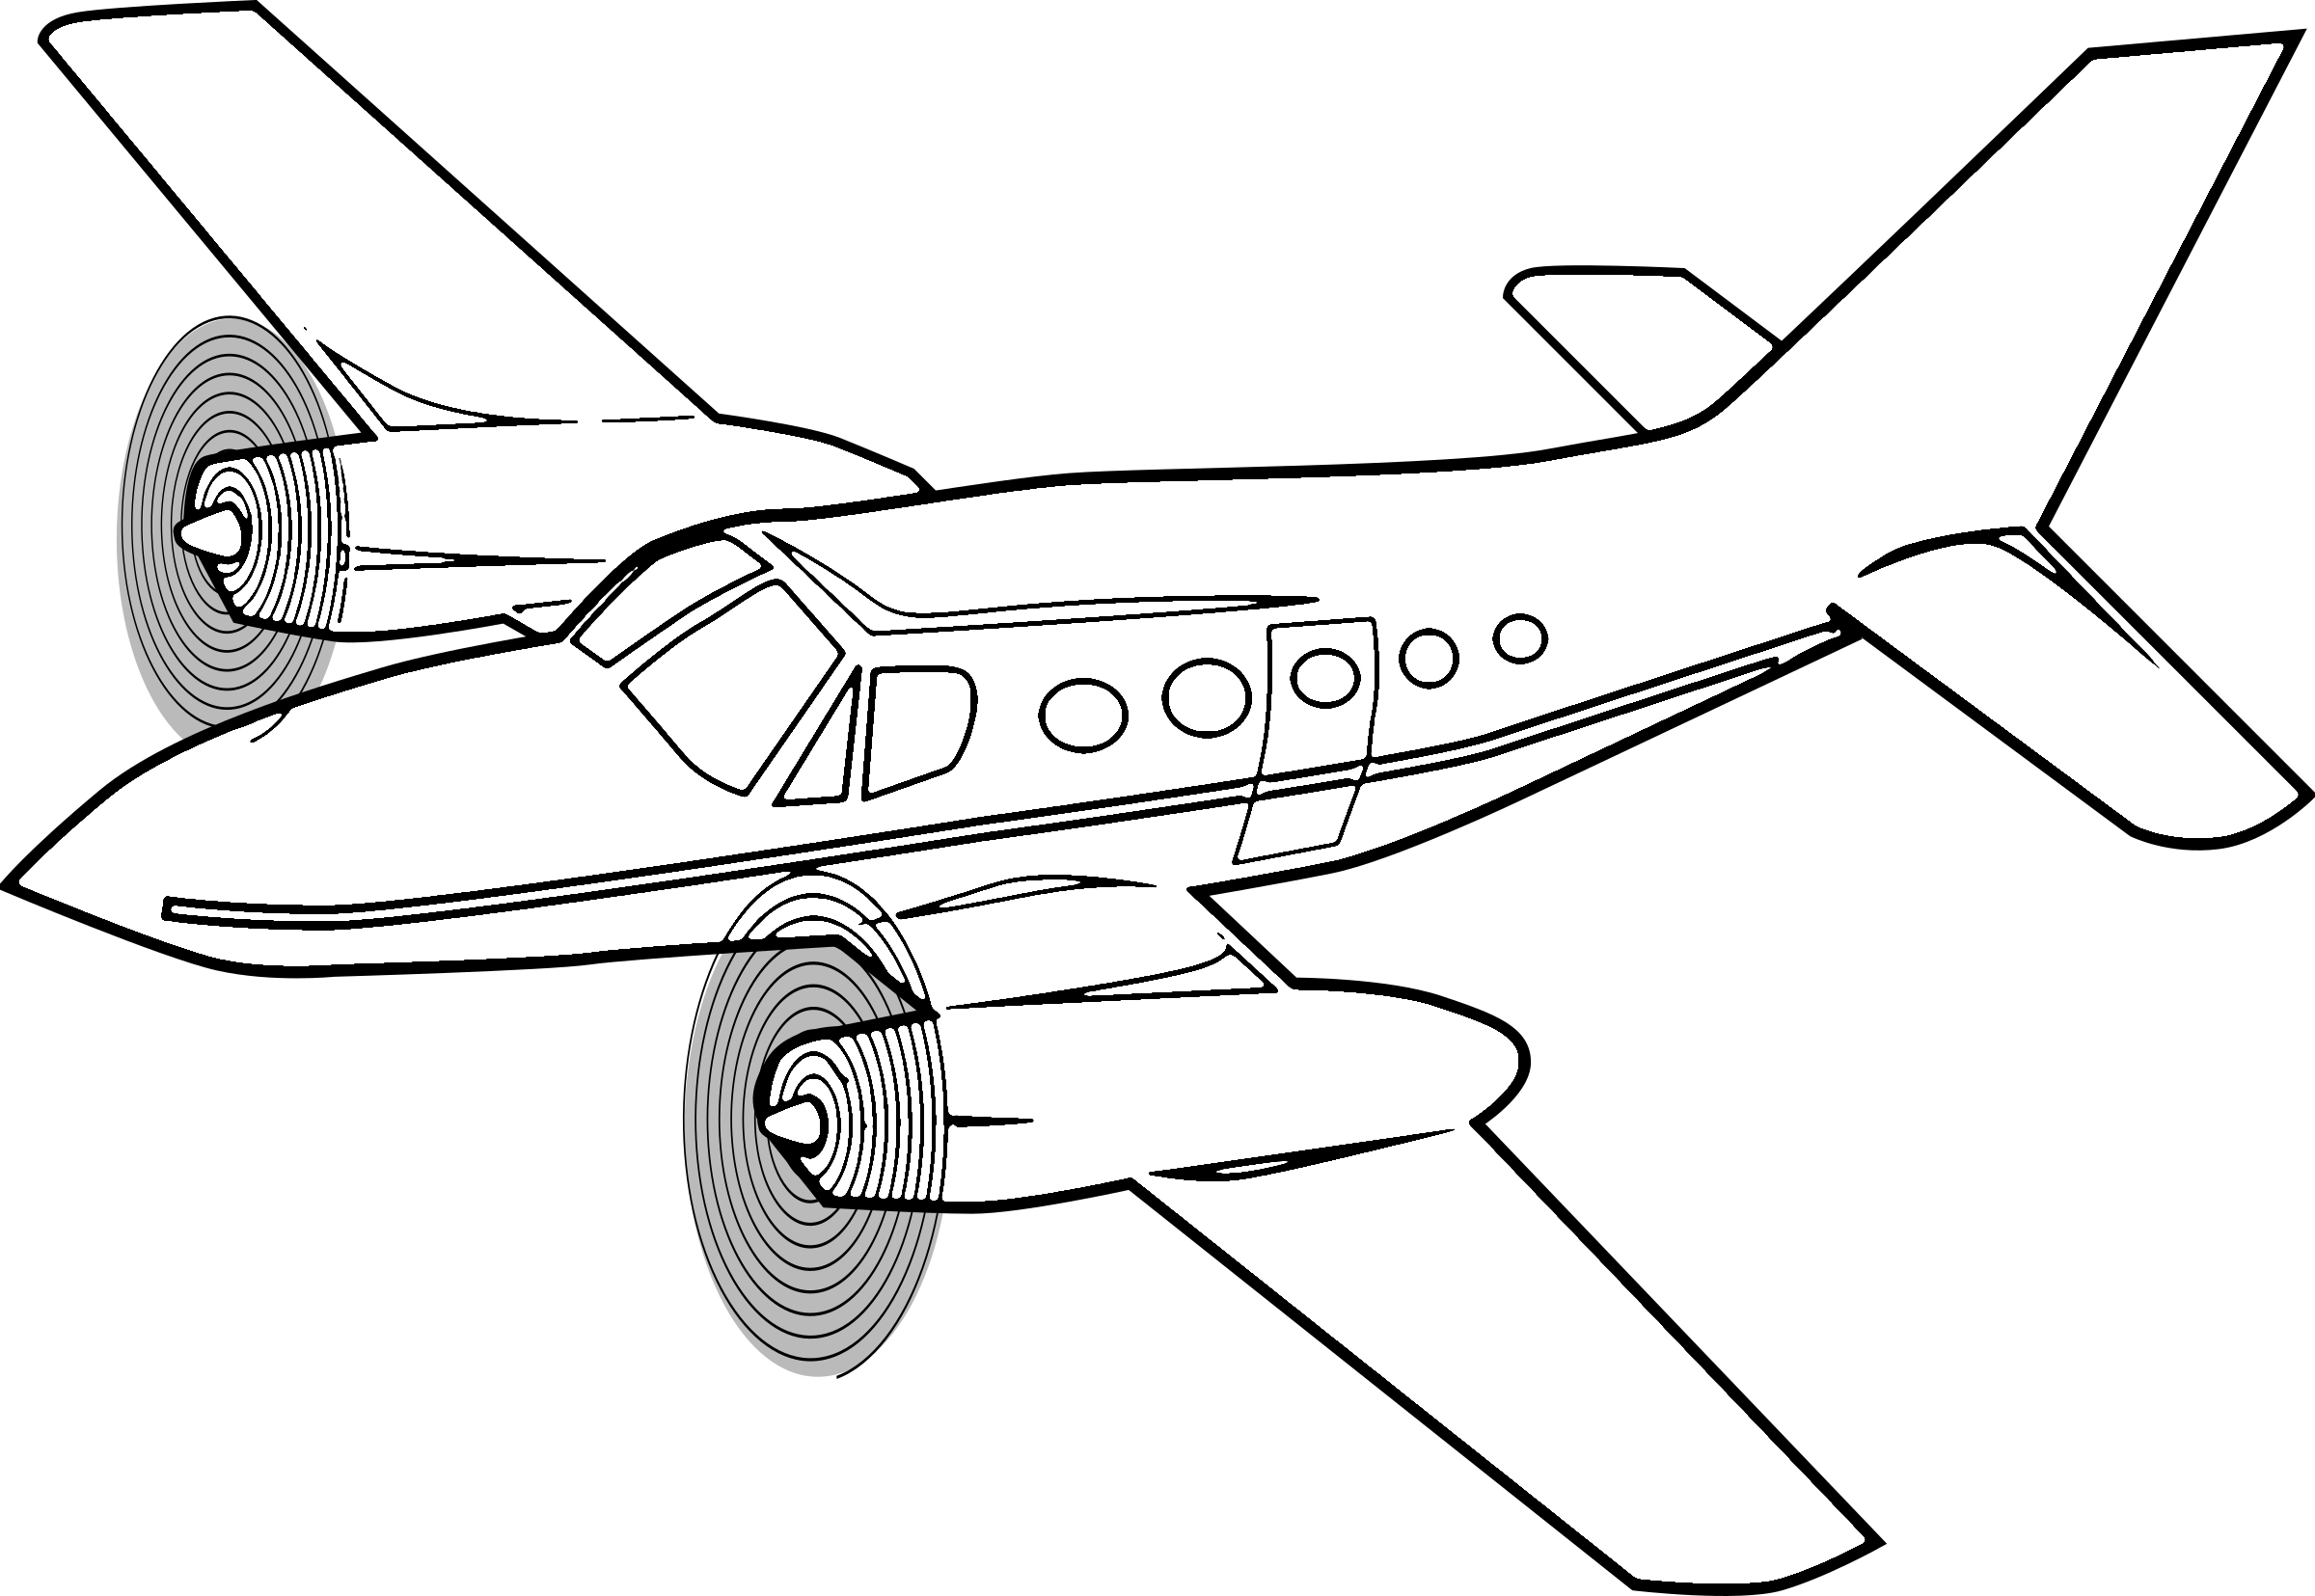 Propeller airplane coloring page